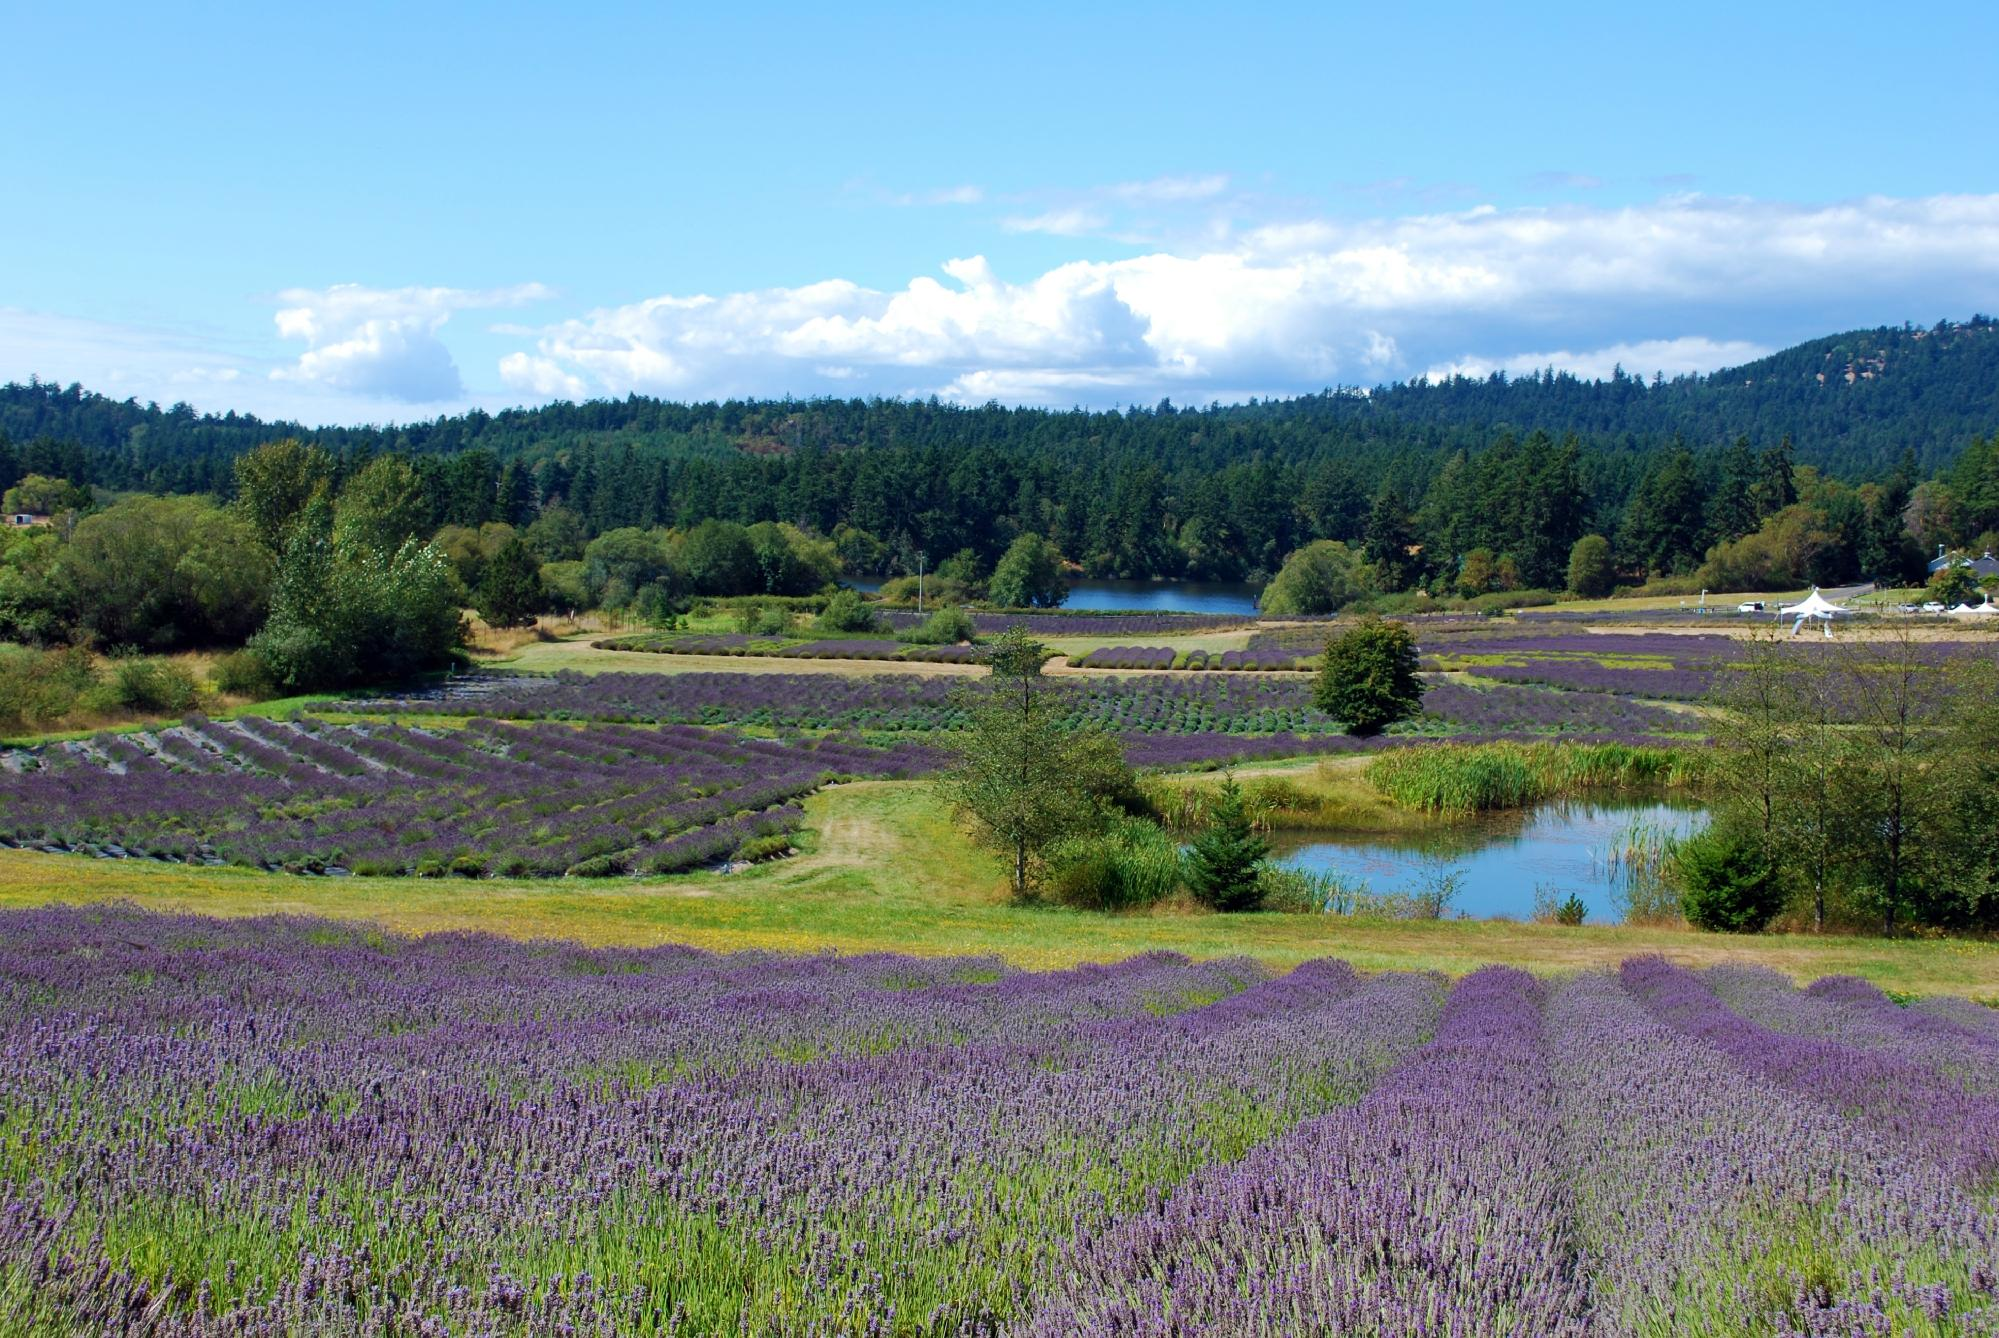 Lavender Farm in the San Juan Islands